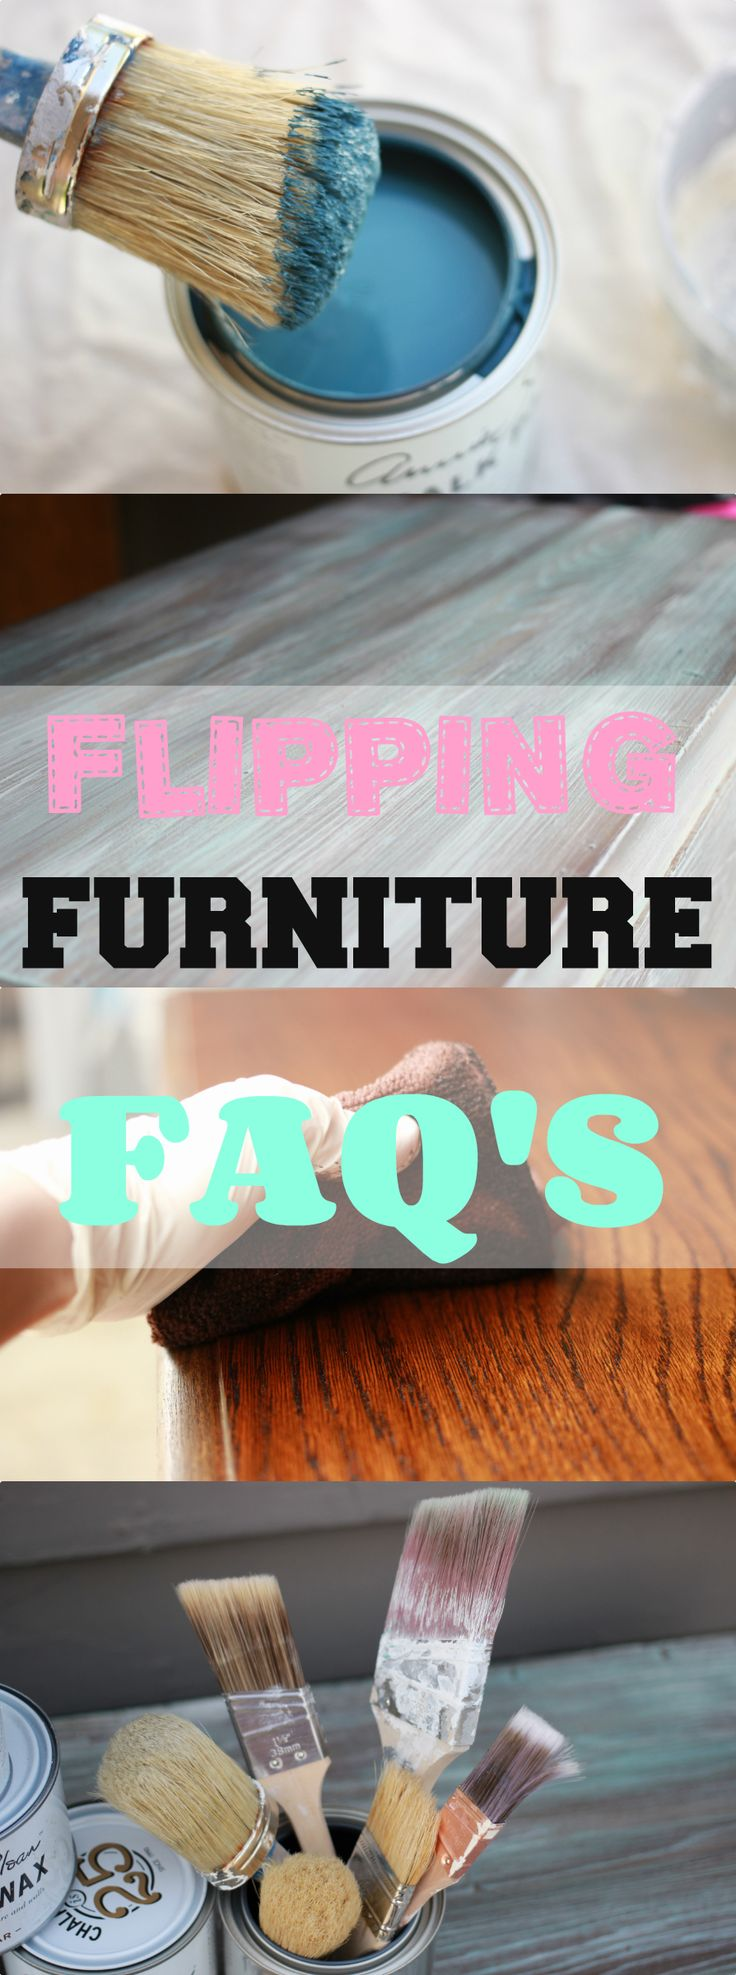 What you need to know about flipping furniture for profit!